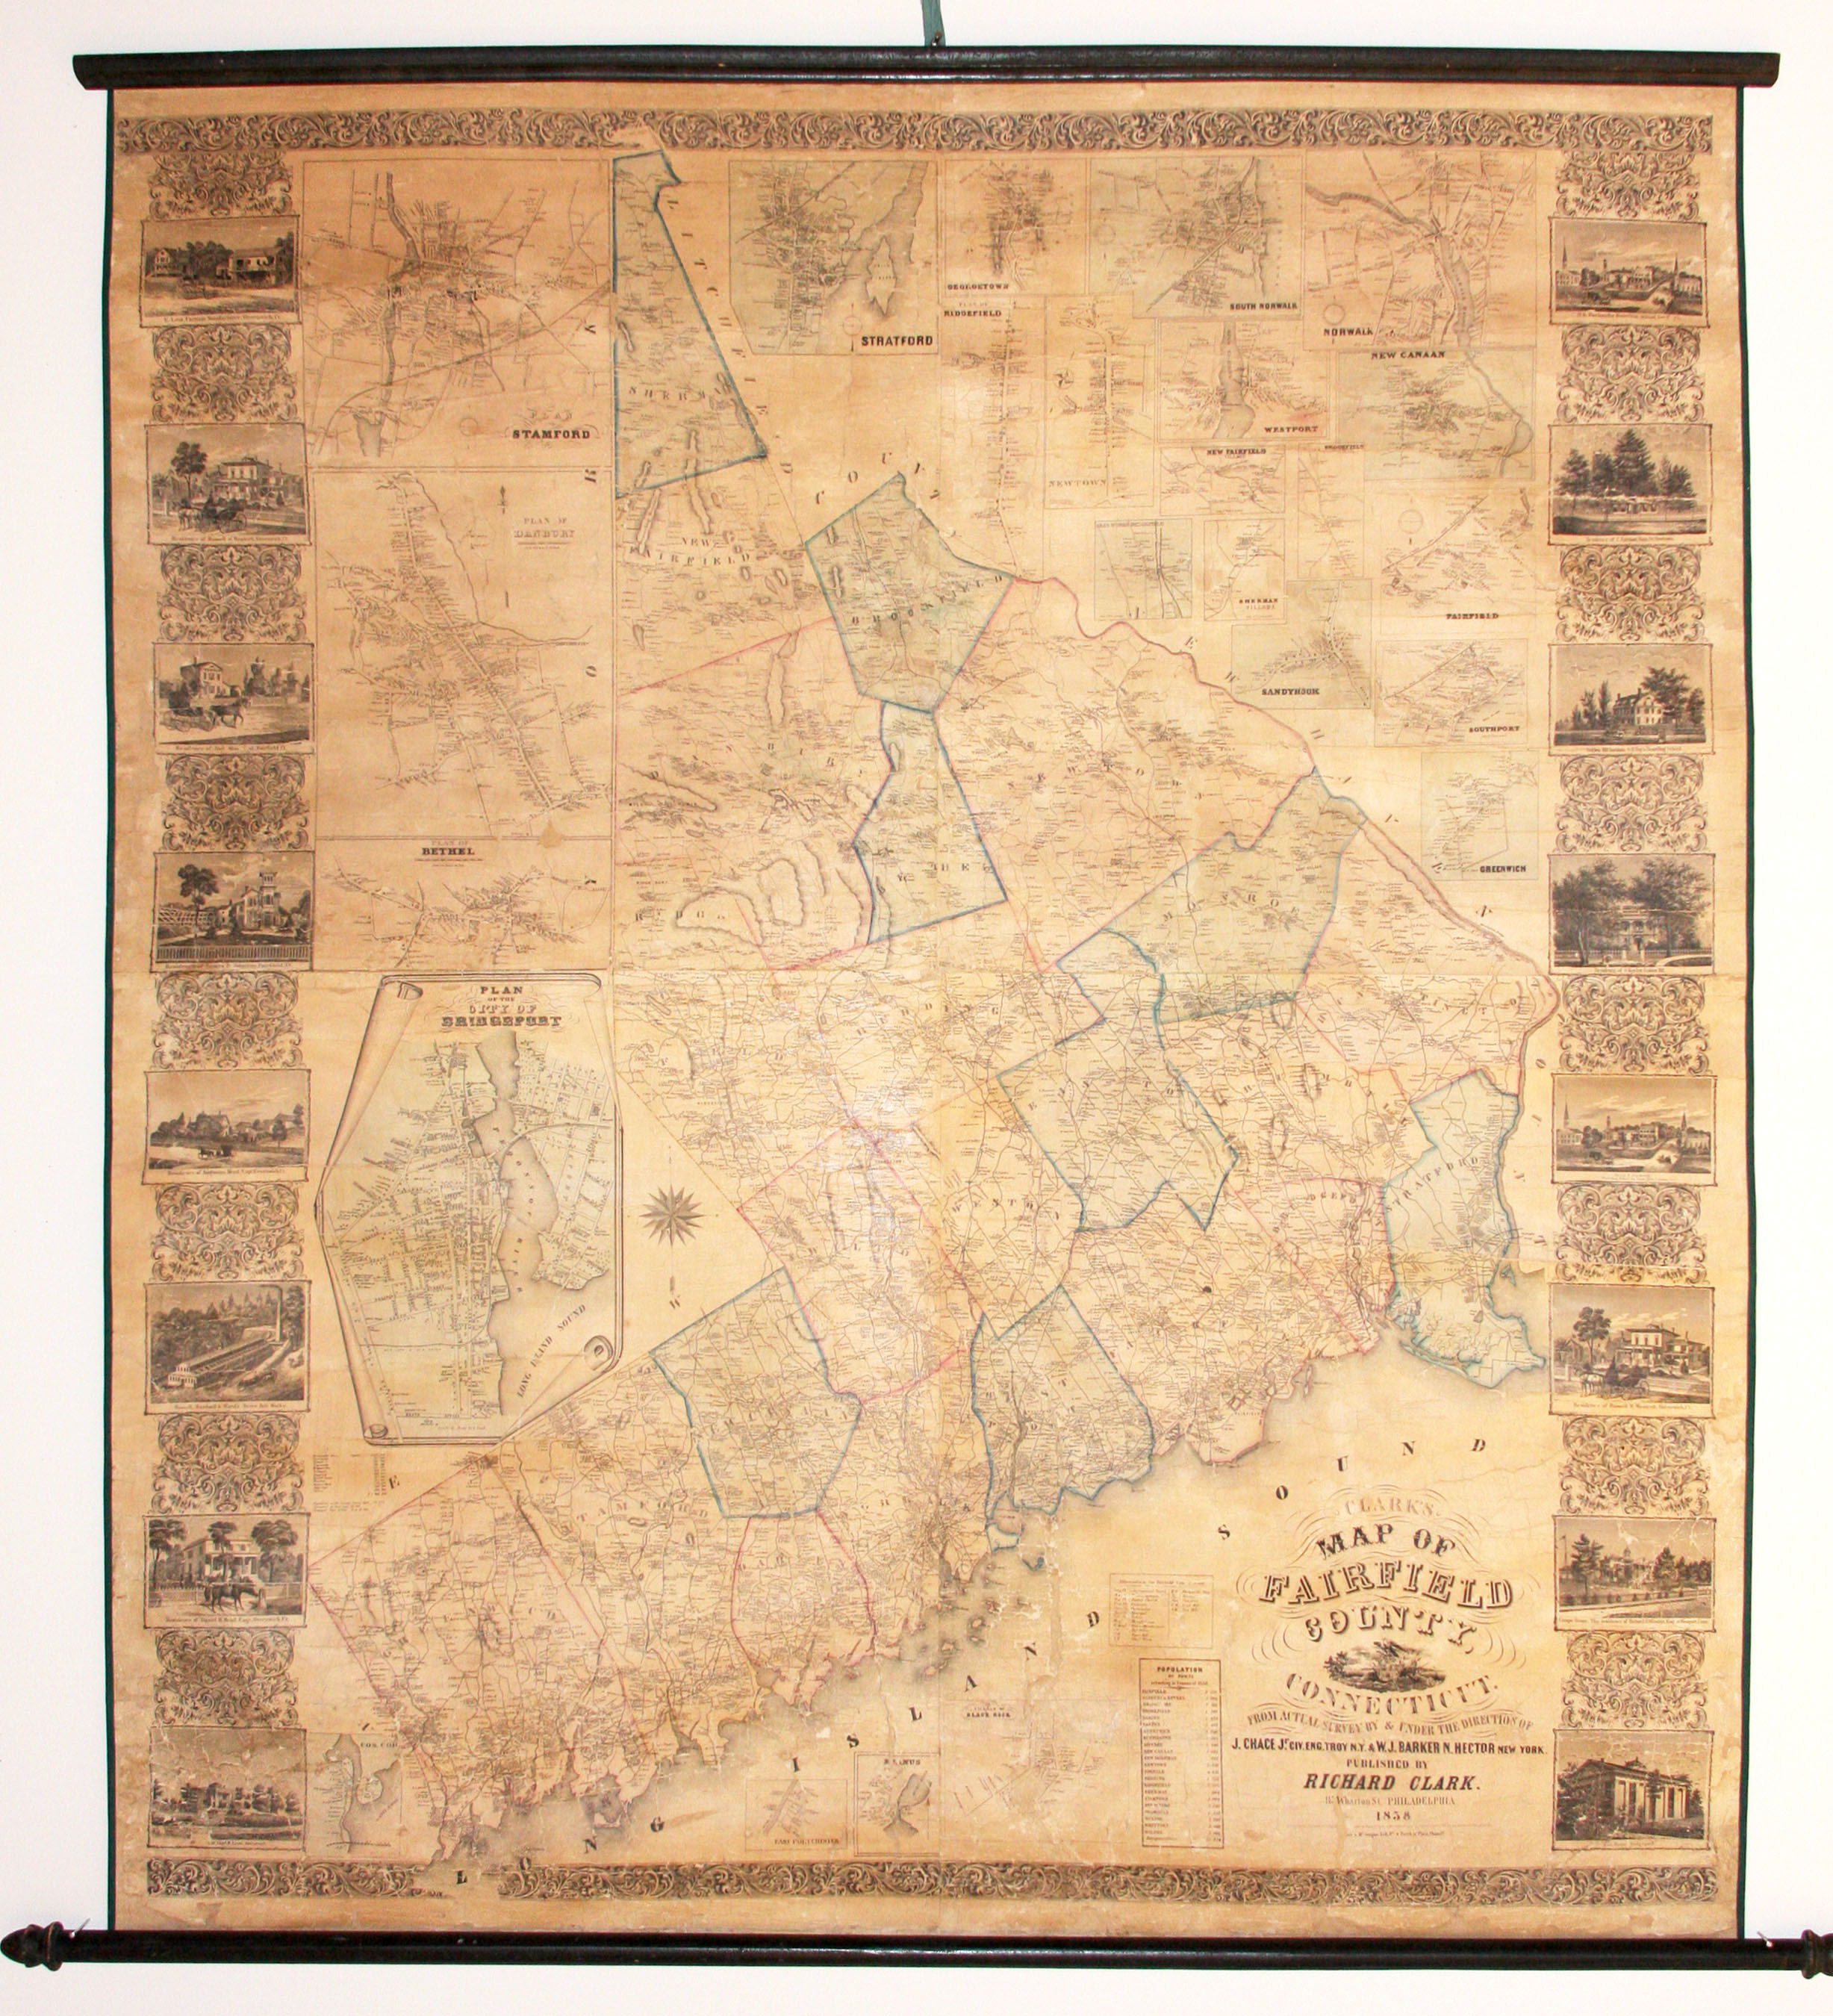 Clarks\' Map of Fairfield County, Connecticut by R CLARK - First Edition -  1858 - from Martayan Lan, Inc. and Biblio.com